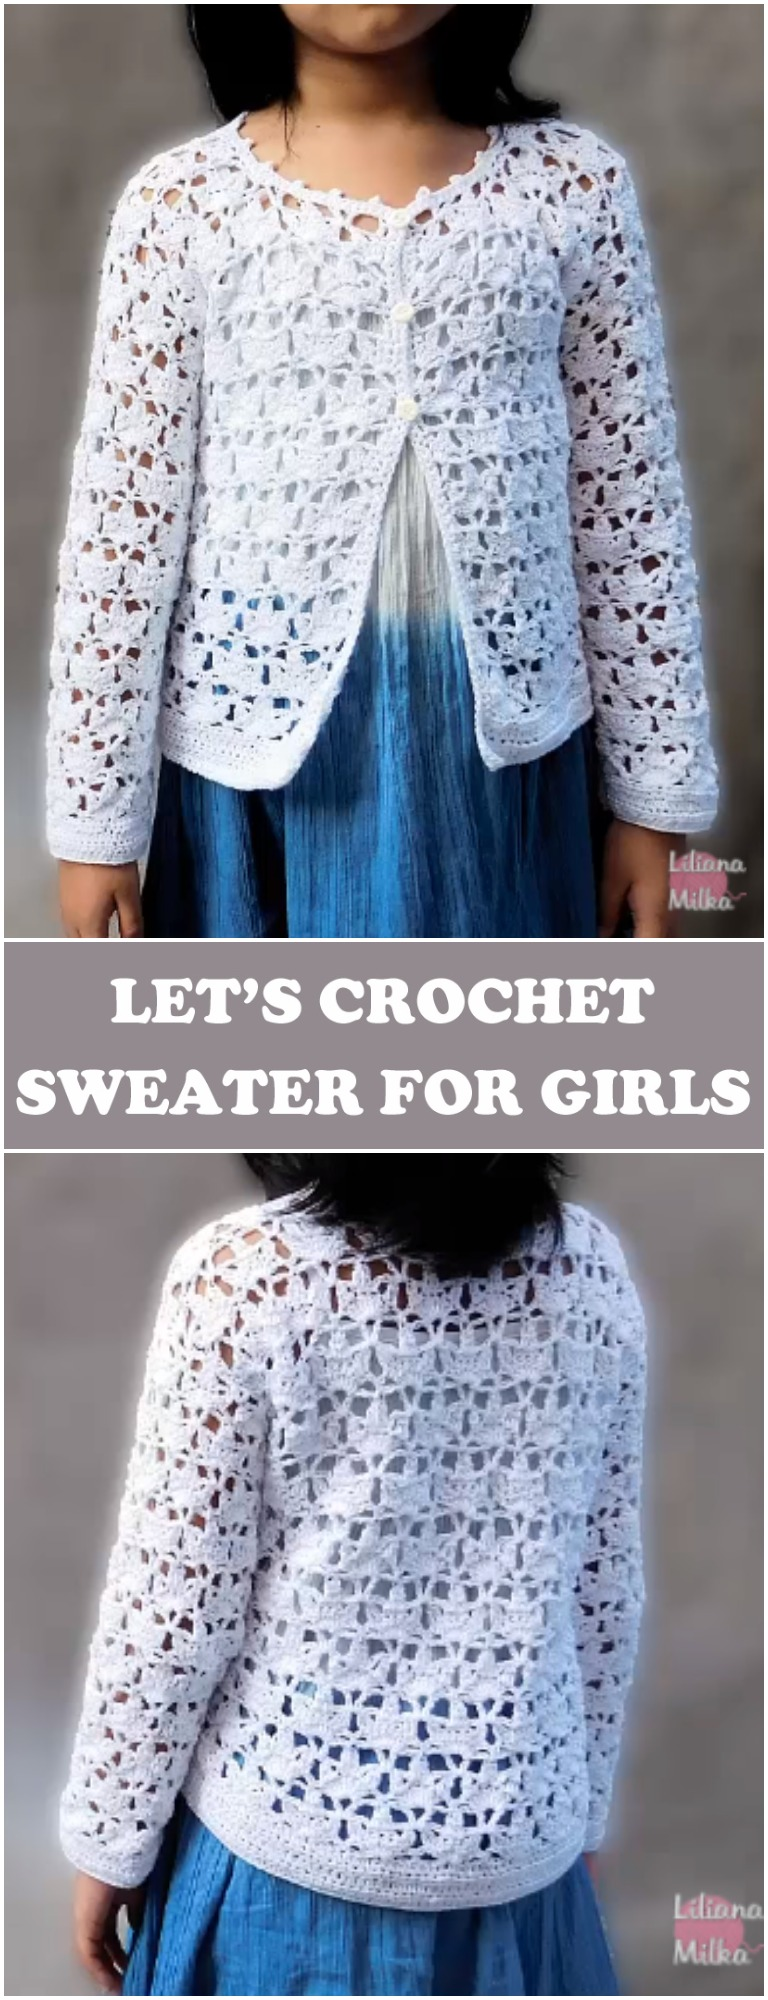 Crochet Sweater For Girls -Free Instruction[Video]